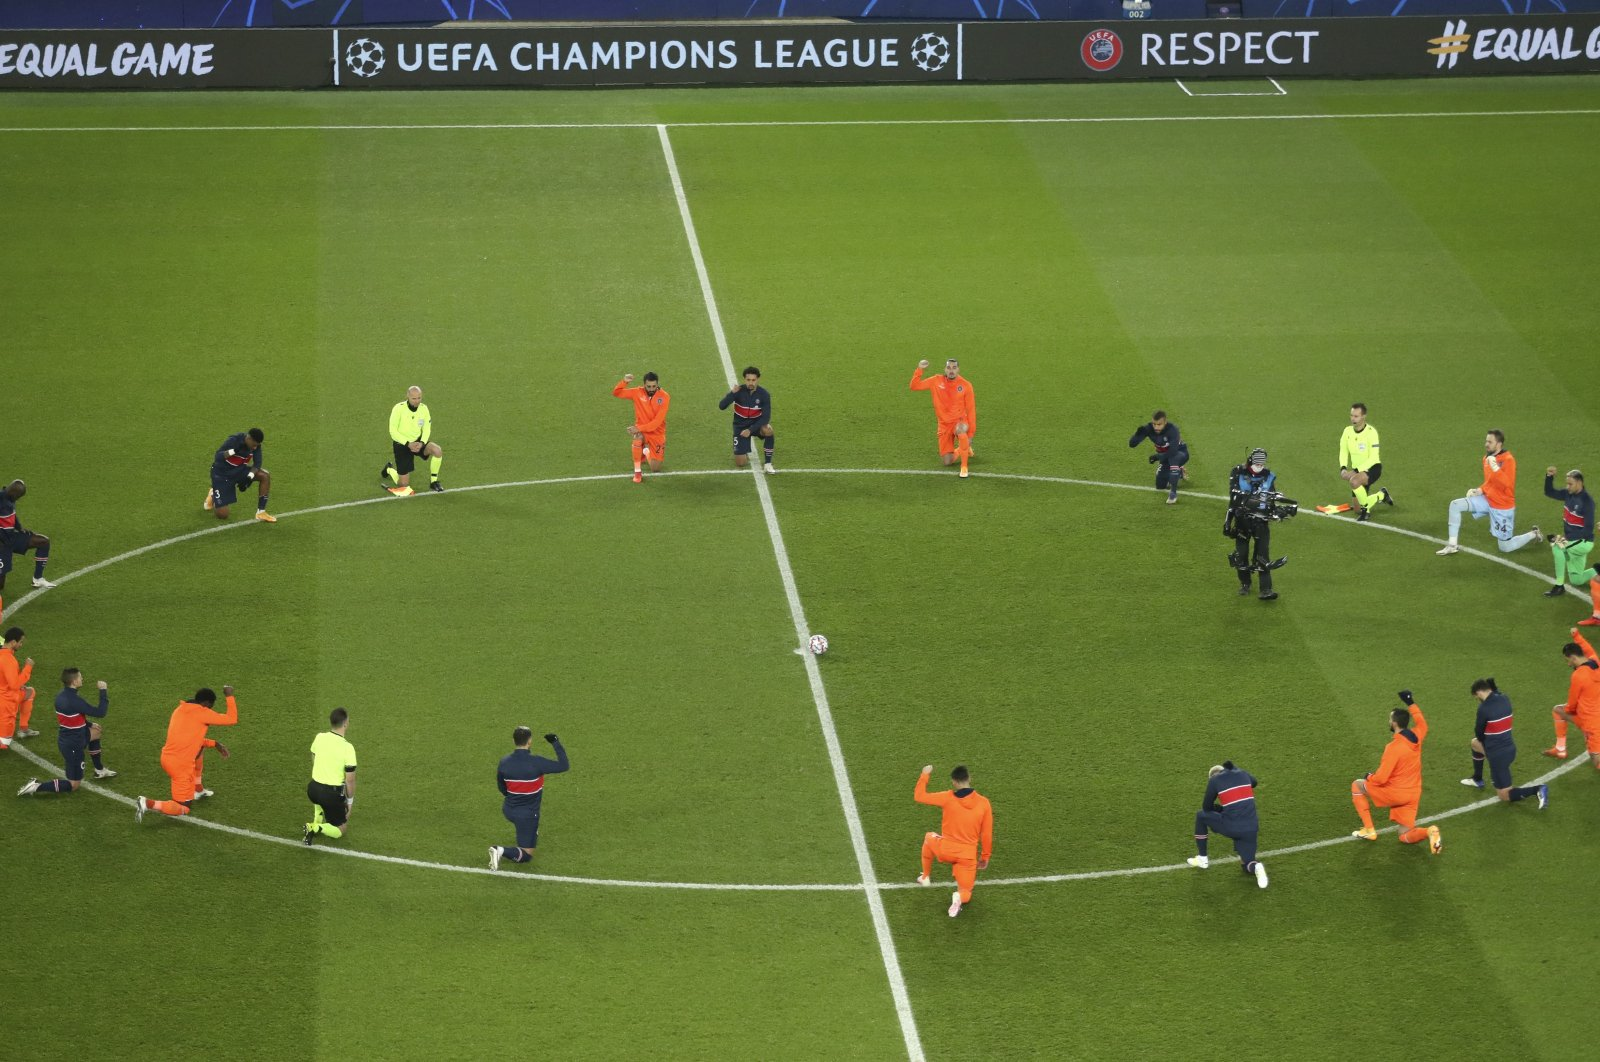 Players kneel in support of the Black Lives Matter campaign before the start of the Champions League group H soccer match between Paris Saint Germain and Istanbul Başakşehir at the Parc des Princes stadium in Paris, France, Dec. 9, 2020. (AP Photo)